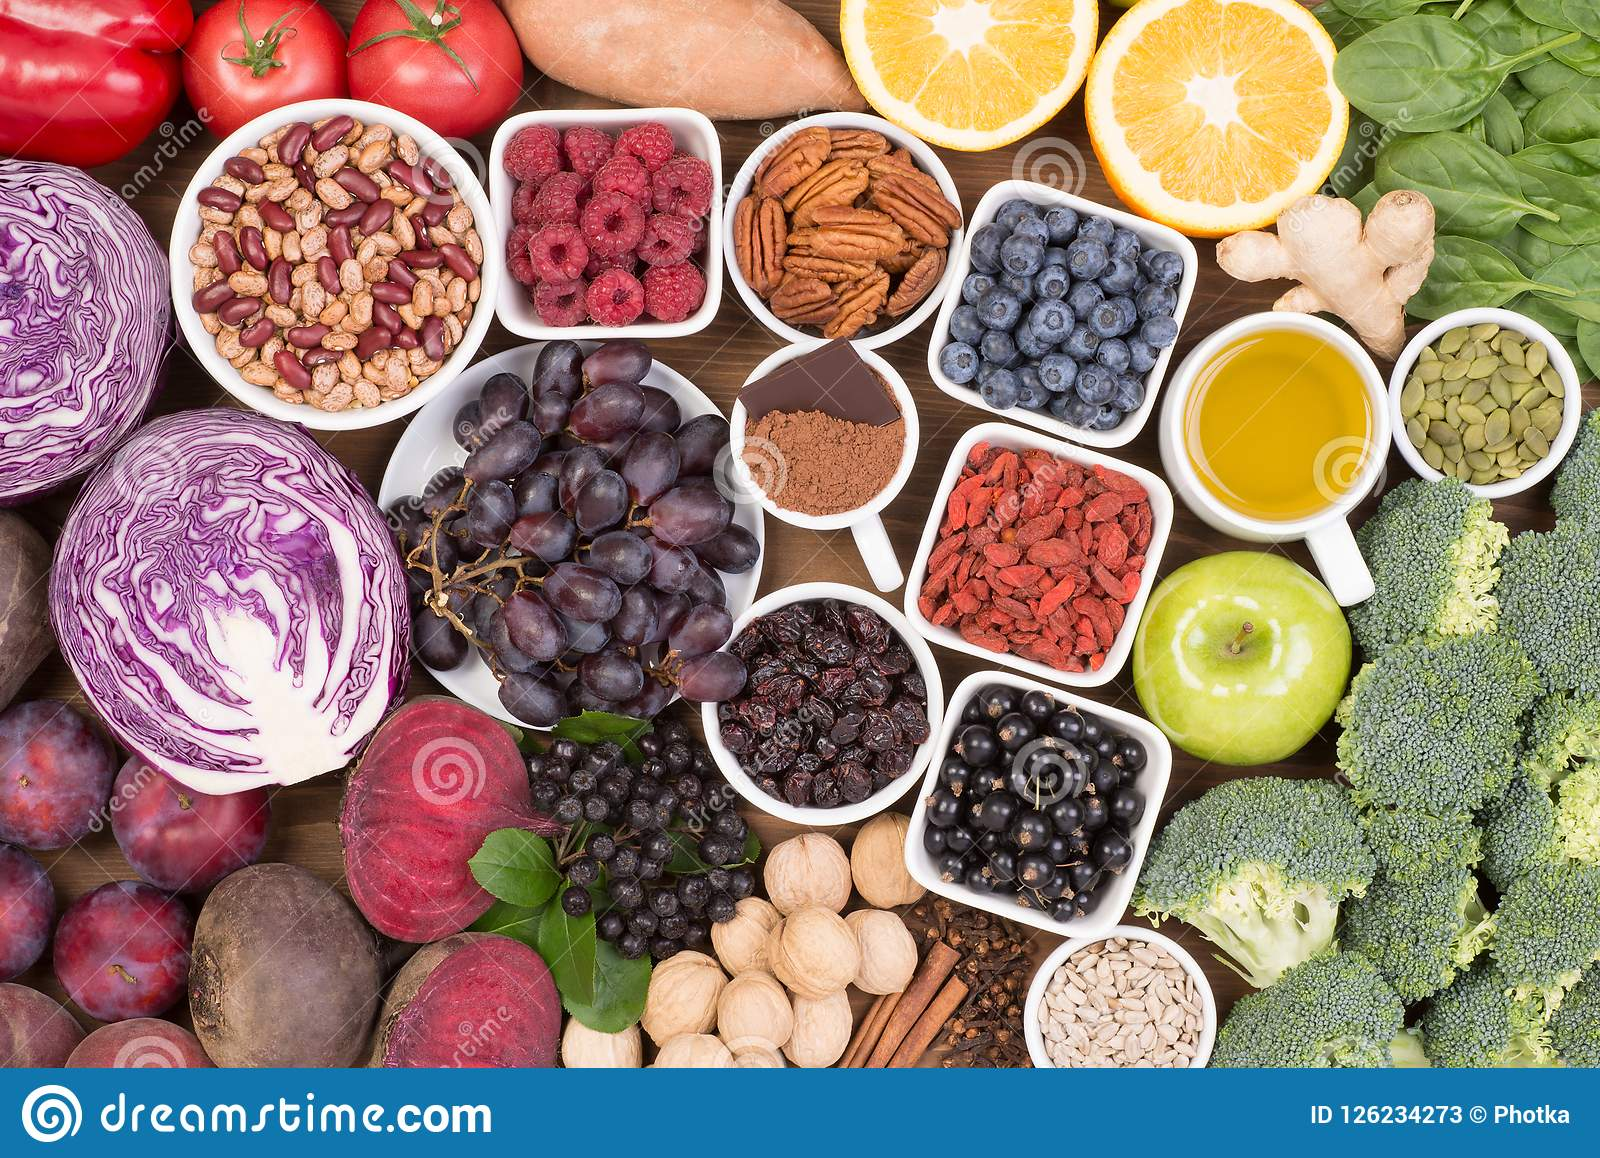 Food sources of natural antioxidants such as fruits, vegetables, nuts and cocoa powder